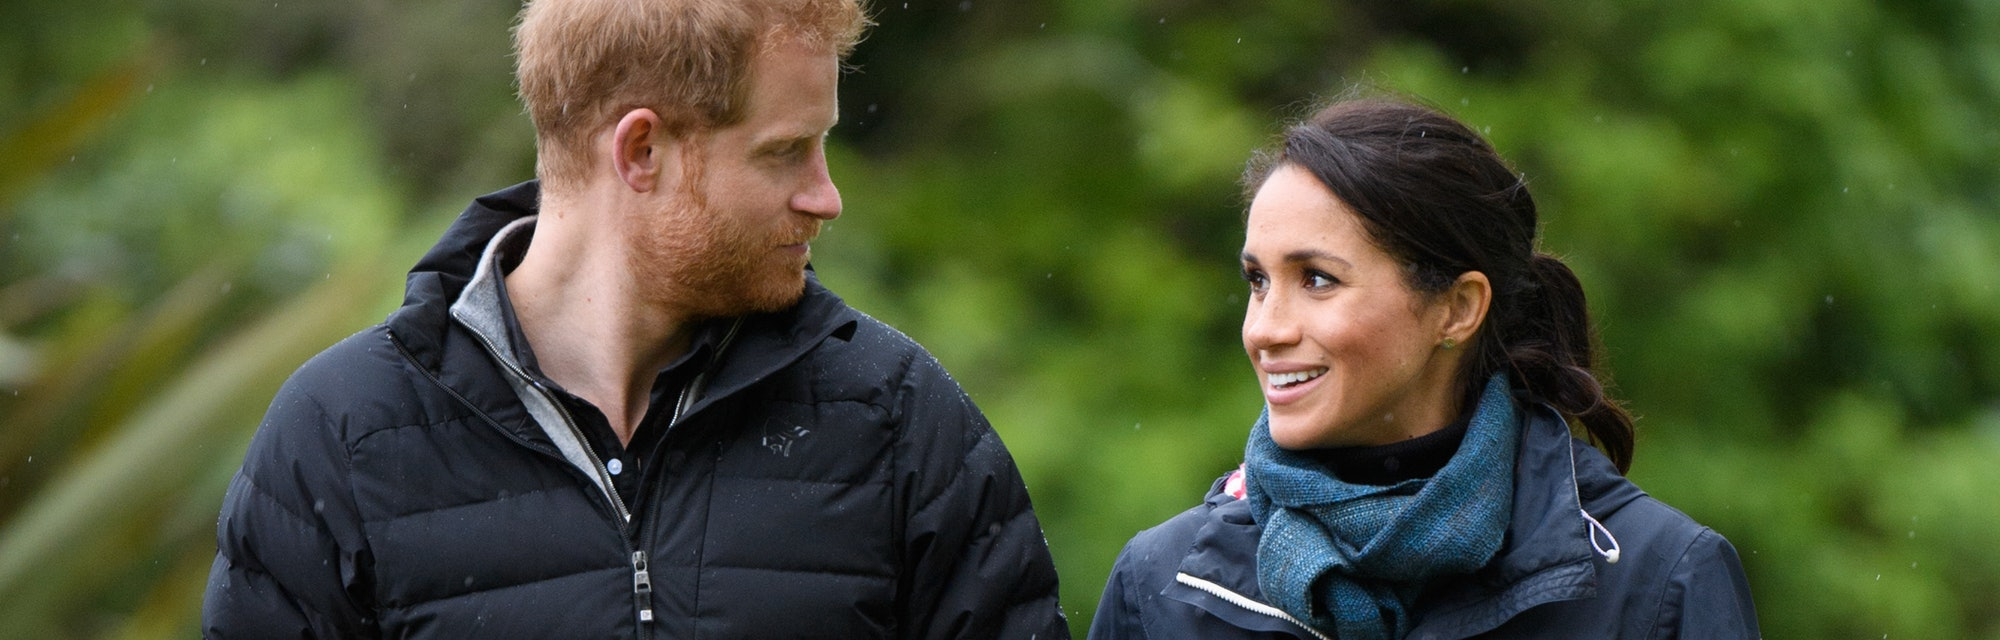 WELLINGTON, NEW ZEALAND - OCTOBER 29:  (UK OUT FOR 28 DAYS) Prince Harry, Duke of Sussex and Meghan,...